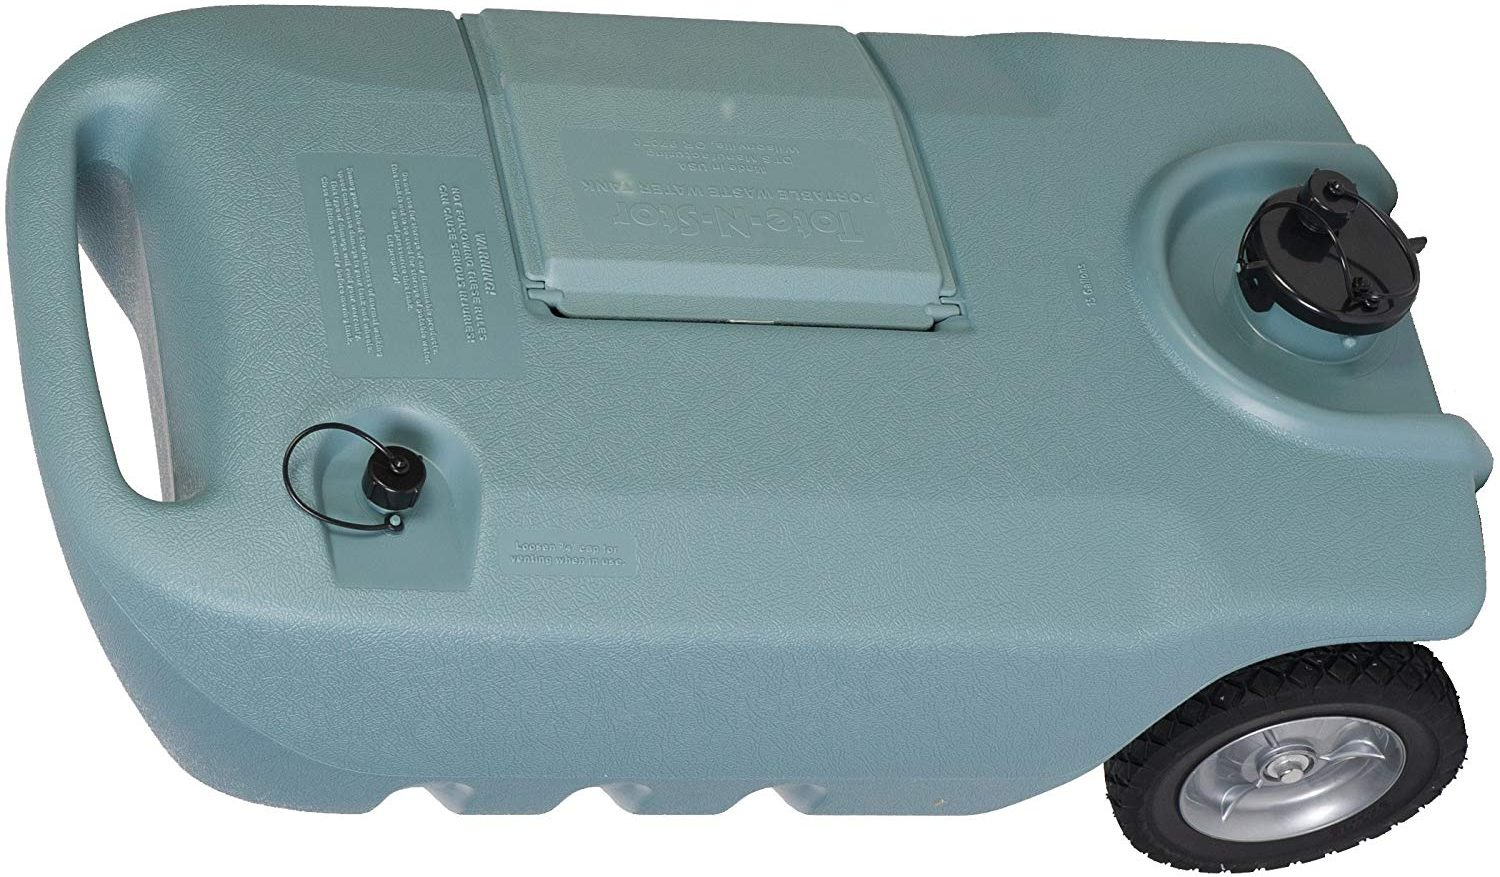 Tote-N-Stor 25607 Portable Waste Transport 15 Gallon Capacity